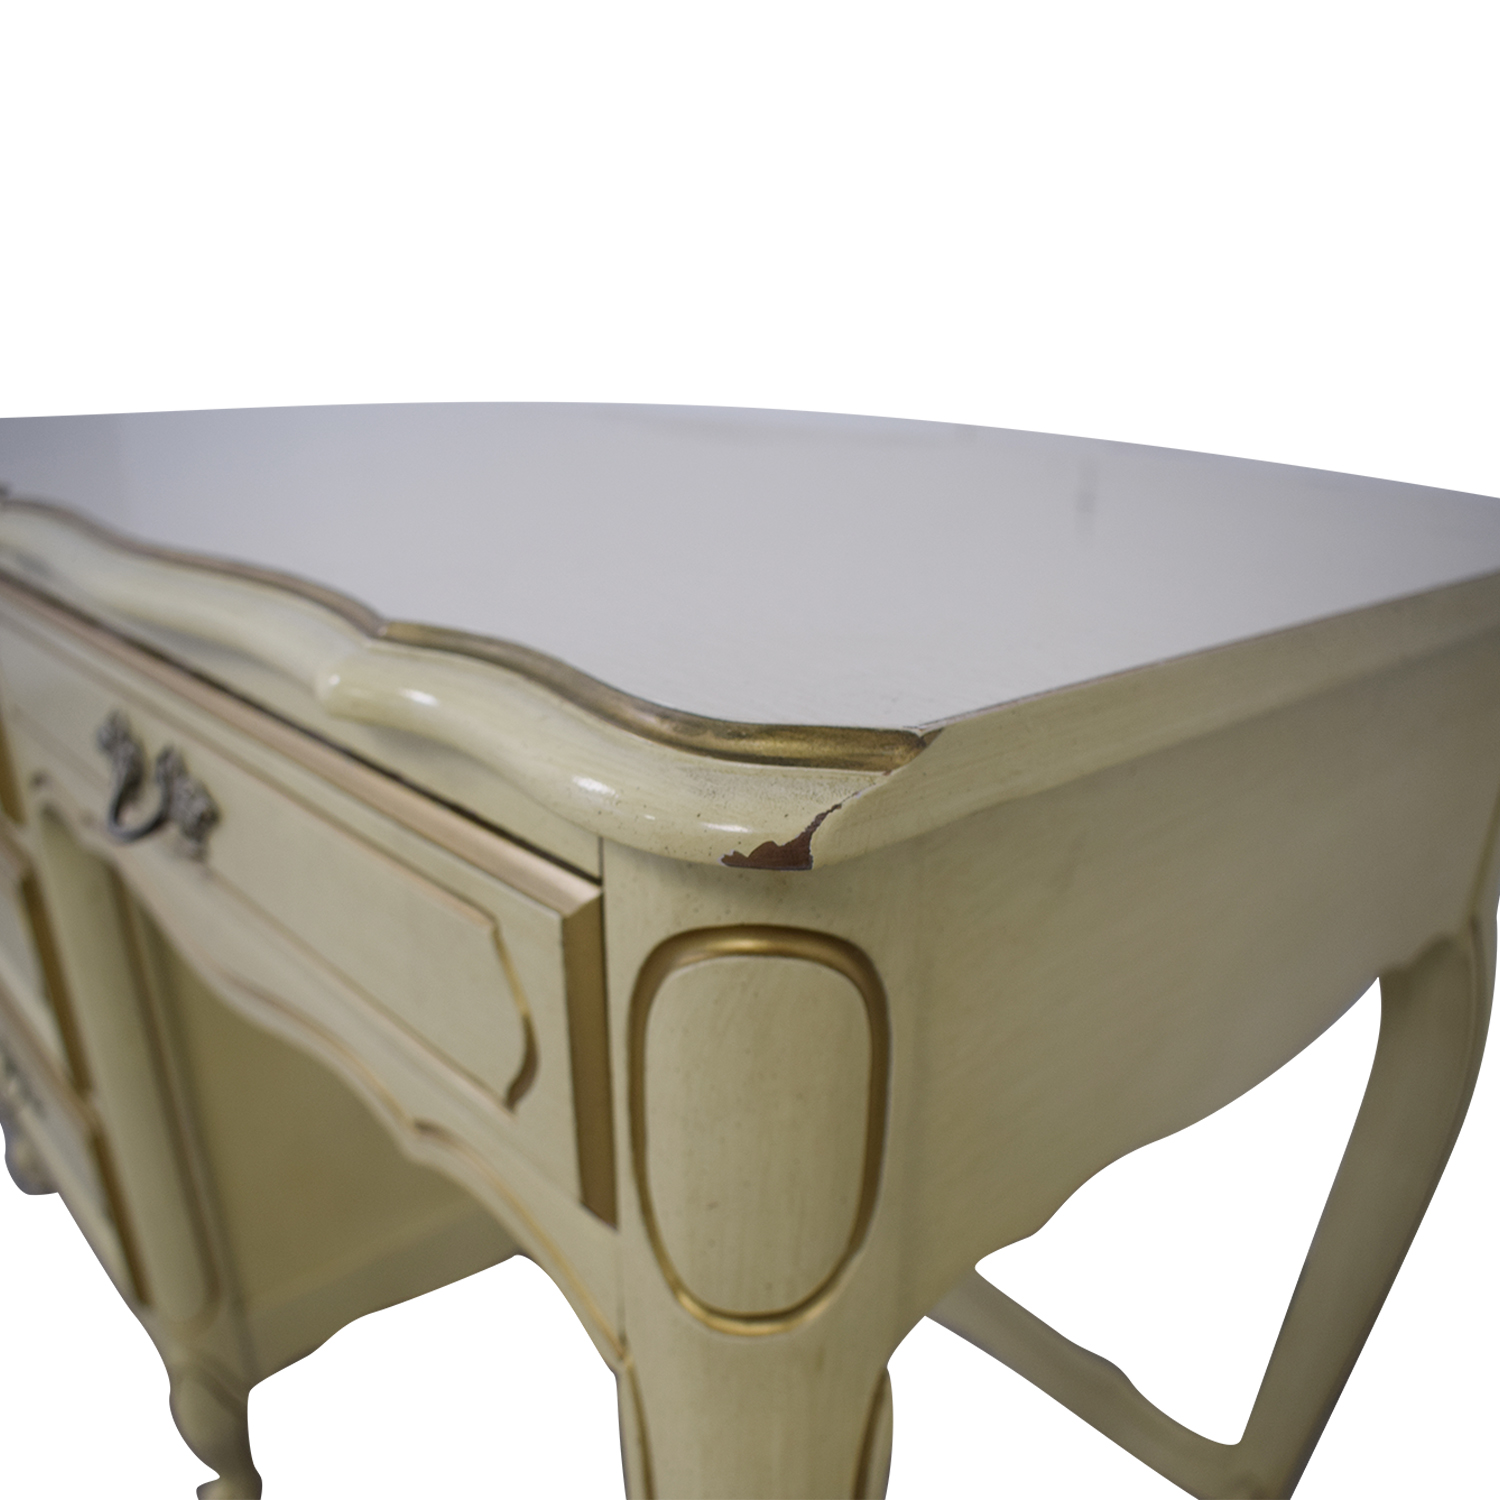 Creme Four-Drawer Desk second hand